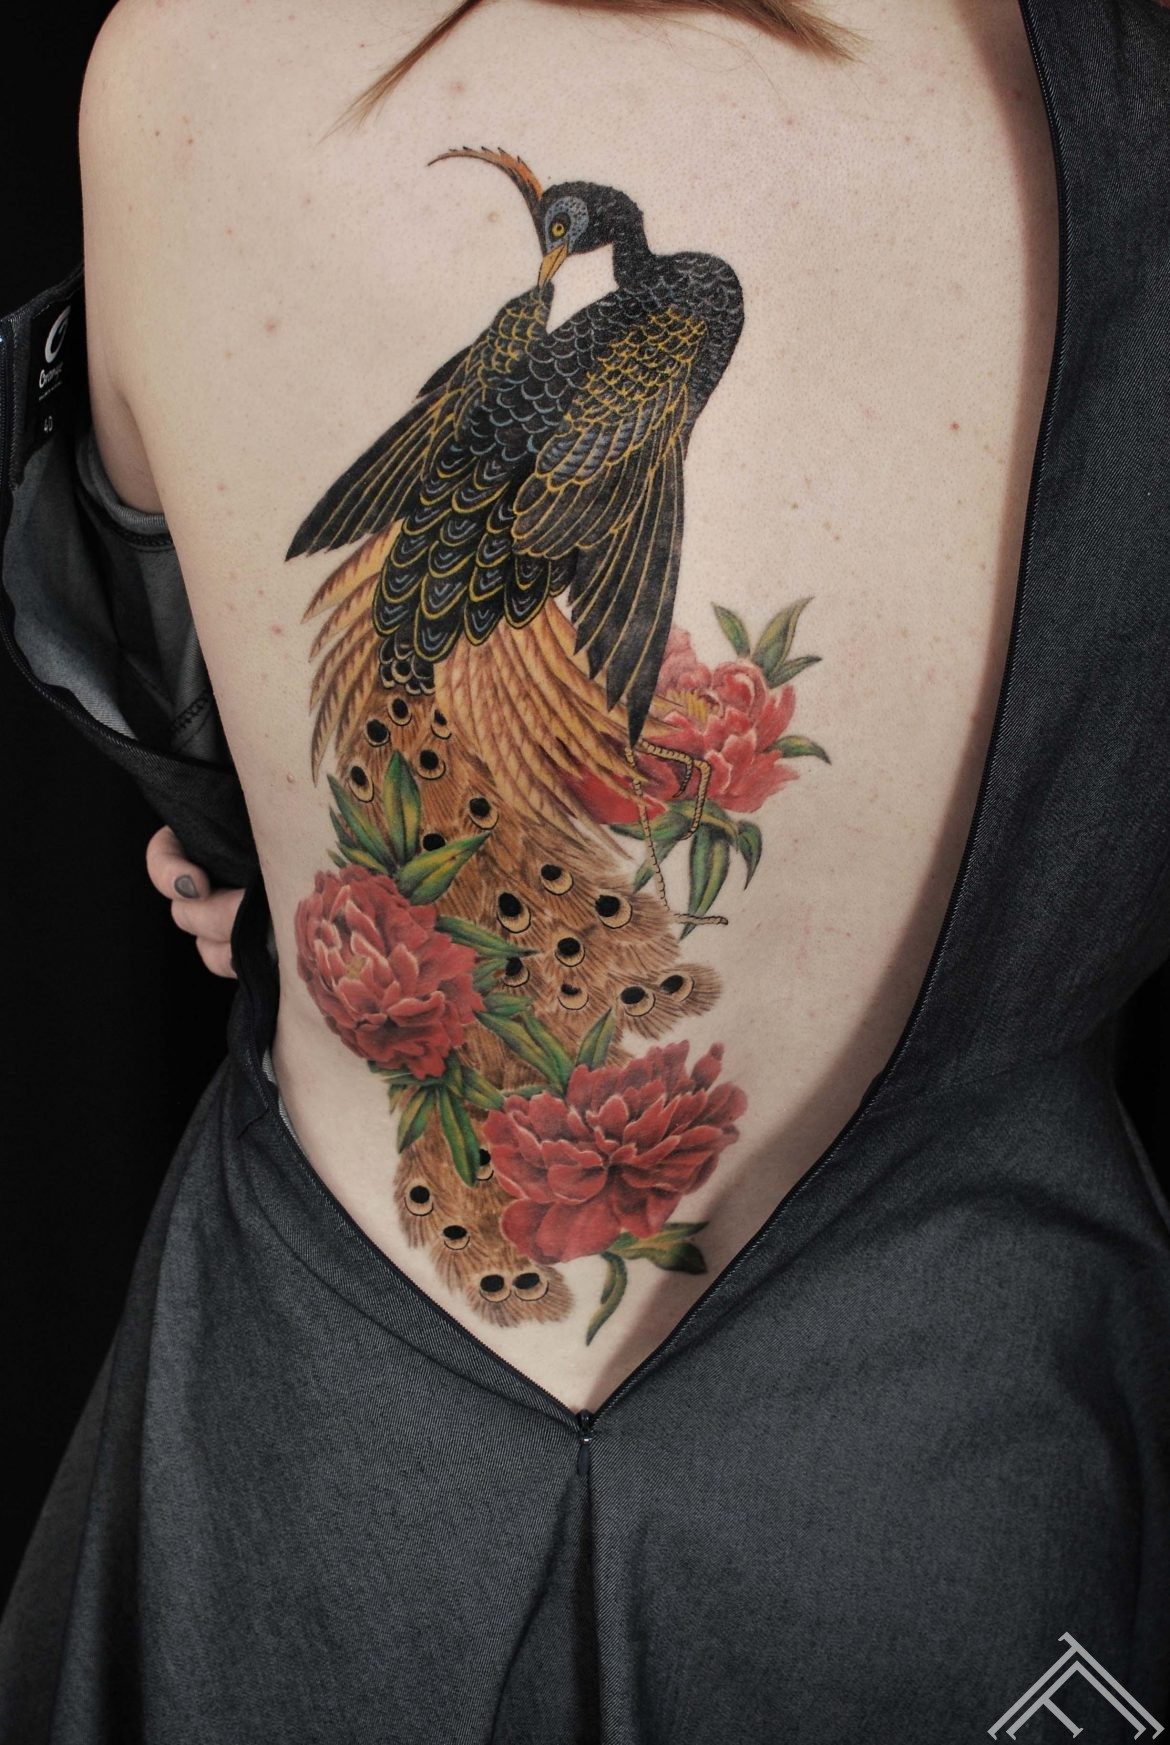 janisanderson-bird-peony-flowers-tattoo-tattoofrequency-riga